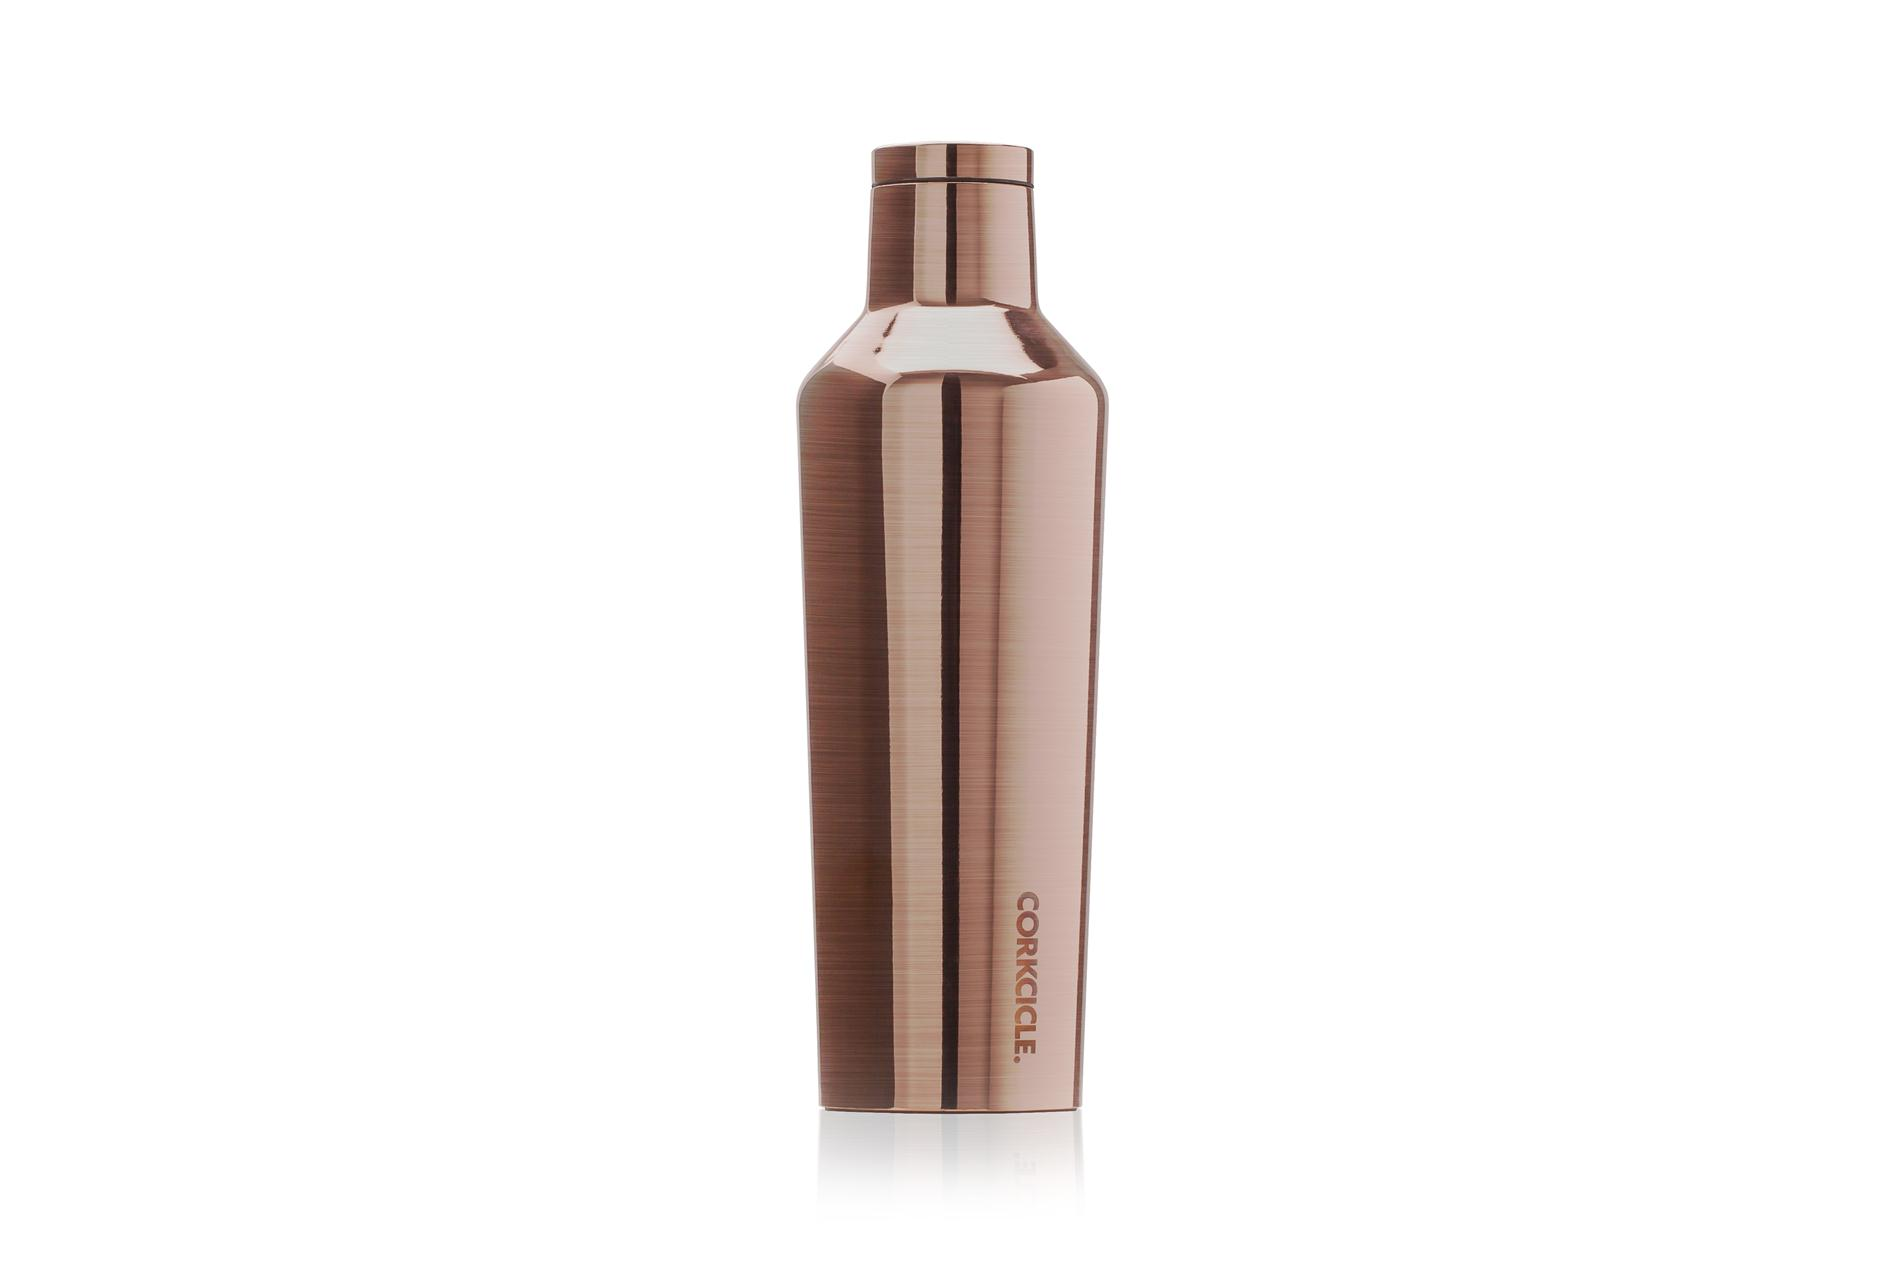 Corkcicle Trinkflasche / Thermo Isolierflasche Copper 475 ml Metallic